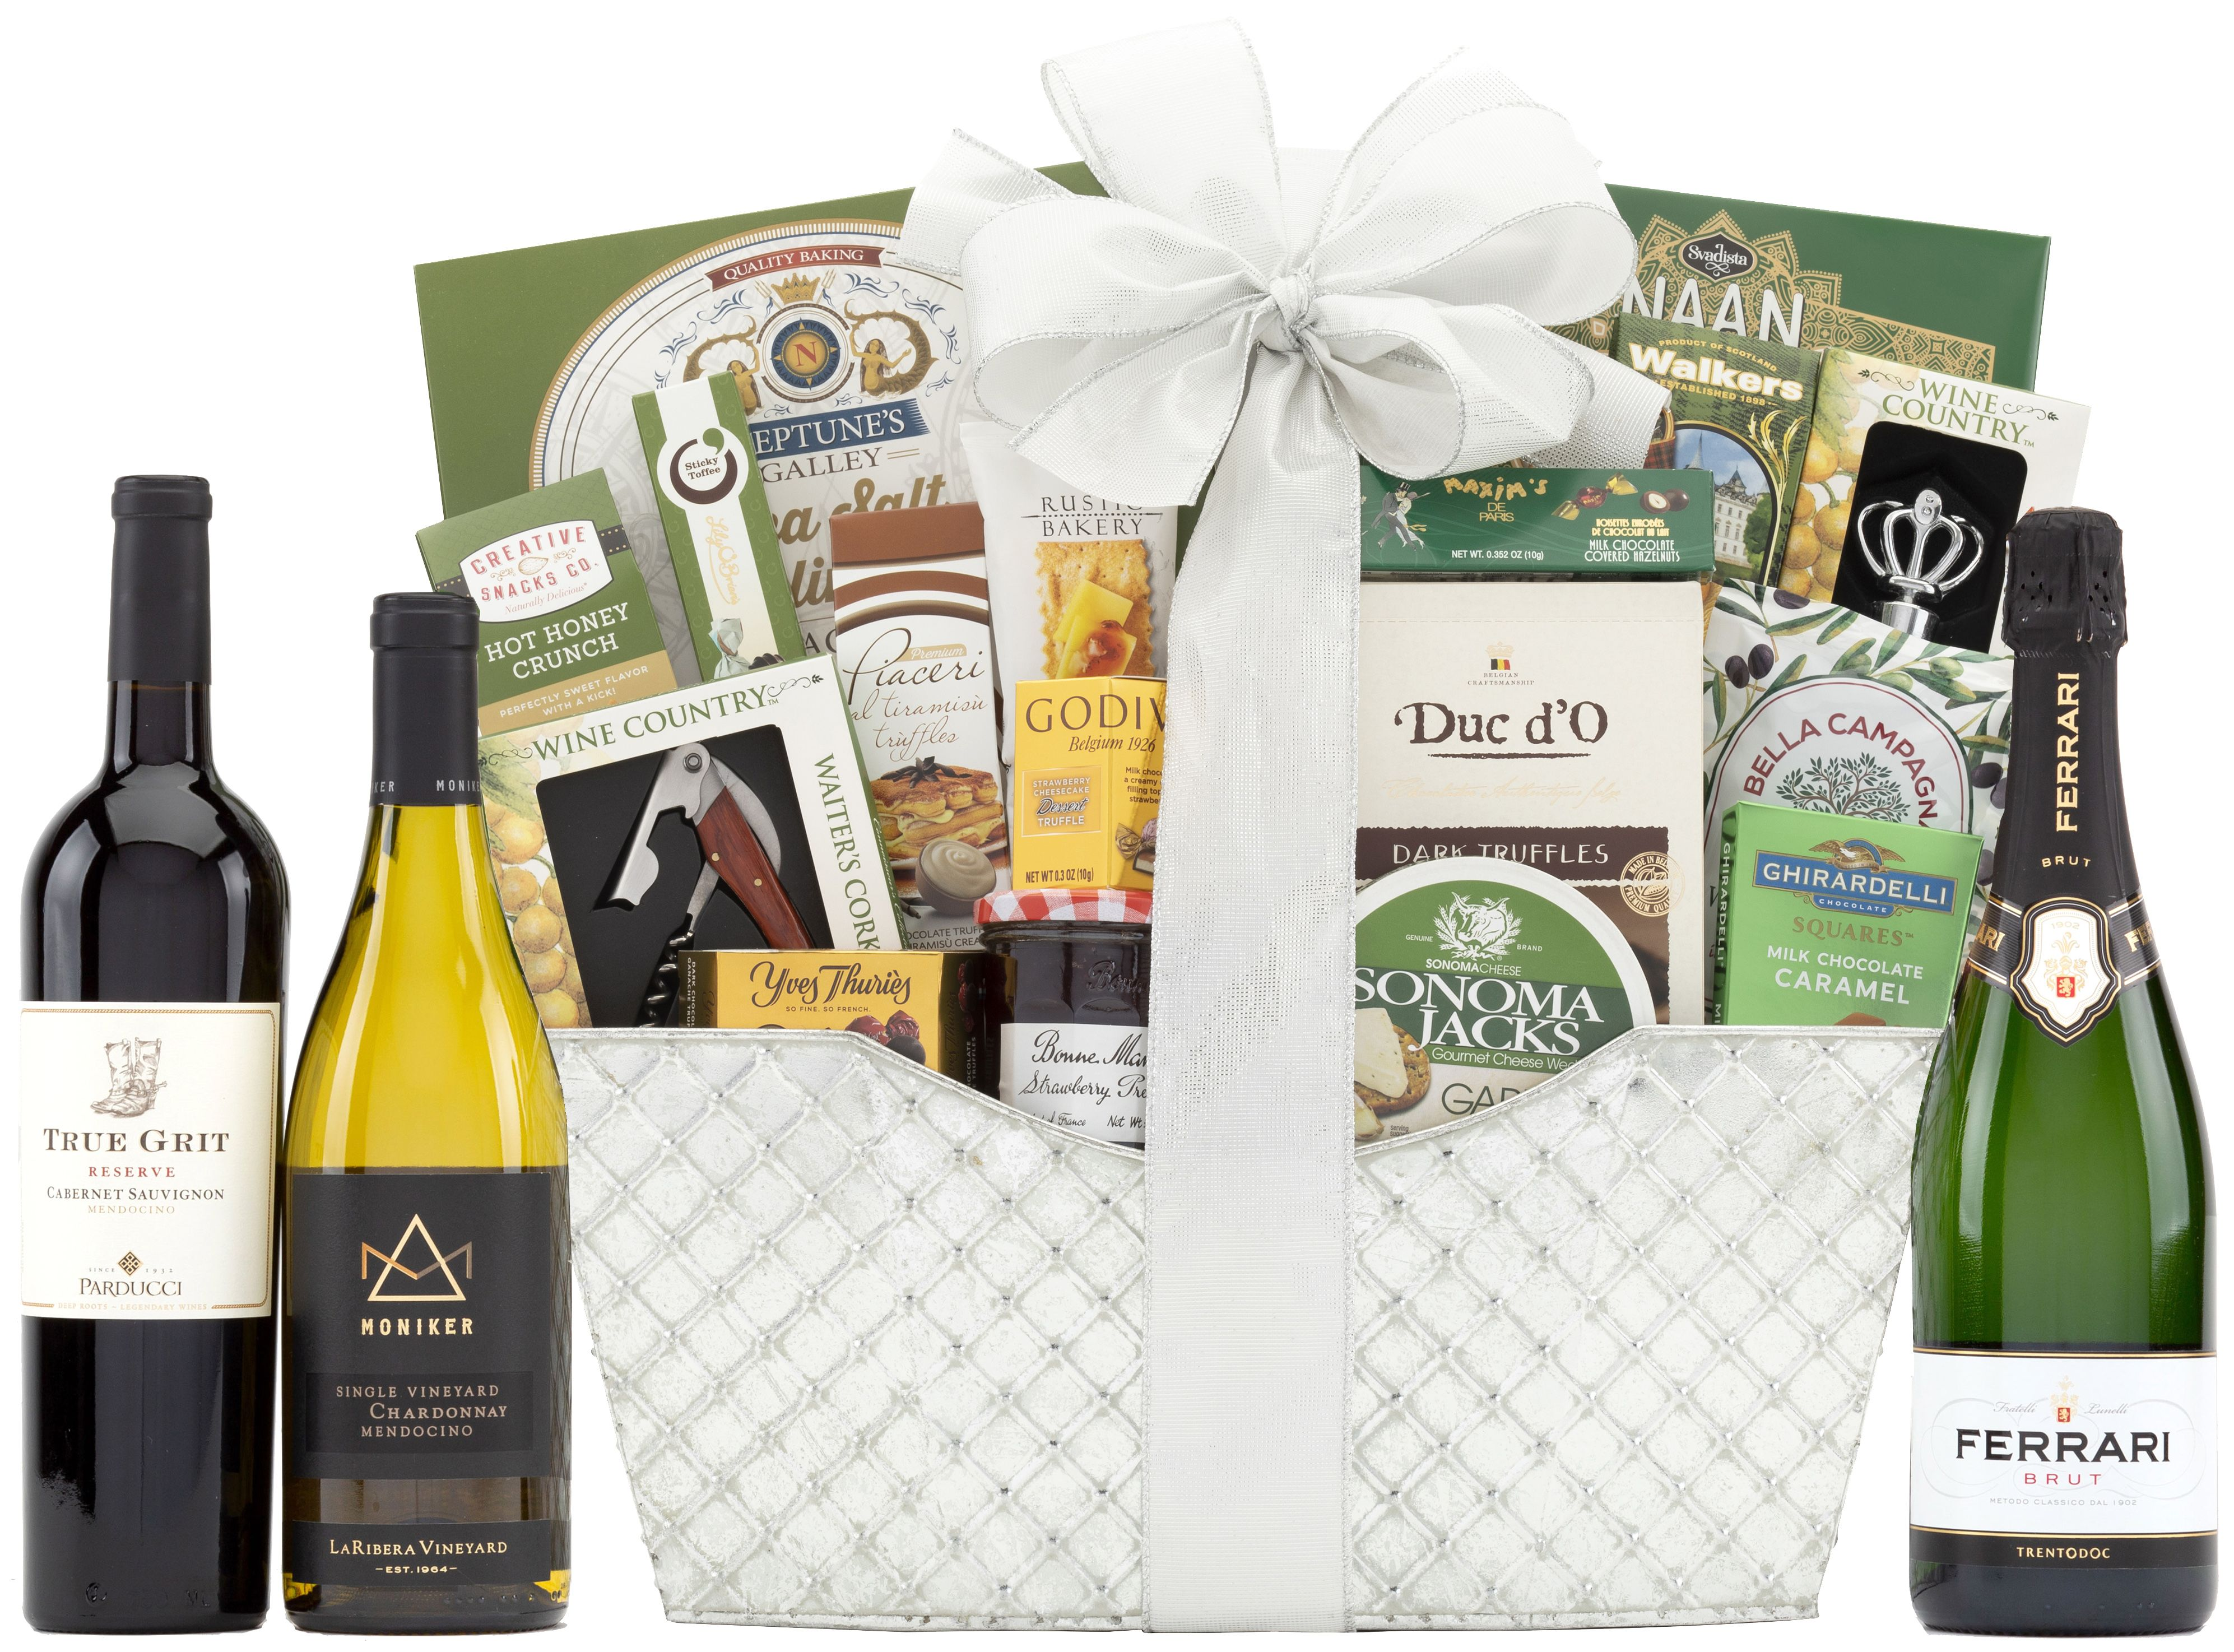 wine.com 90 Point Bountiful Vineyard Wine Gift Basket  Gift Product Image